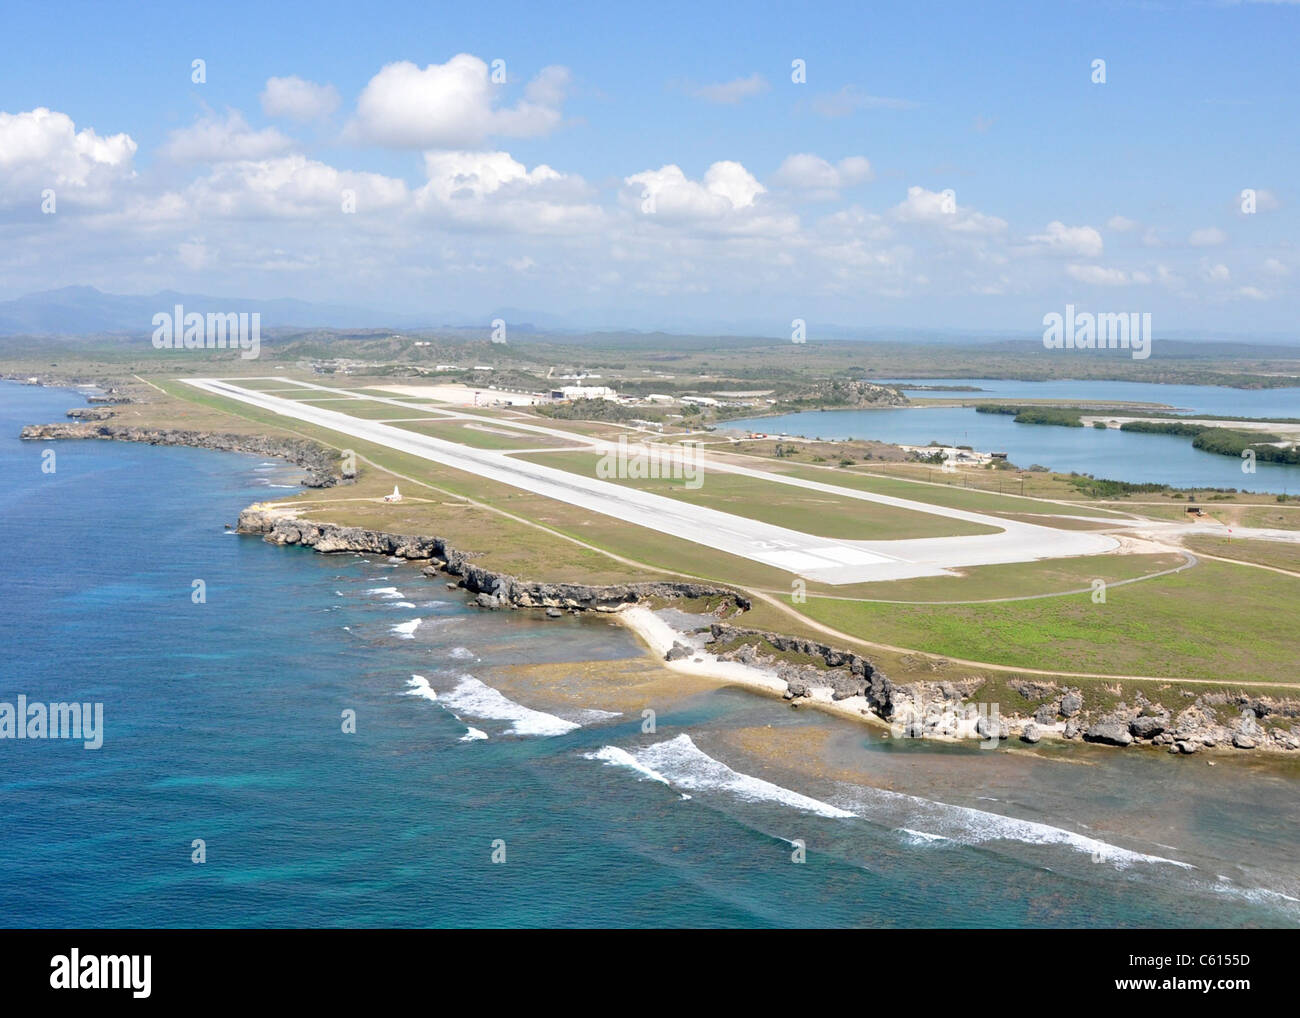 The leeward airfield at U.S. Naval Station Guantanamo Bay Cuba. May 6 2010., Photo by:Everett Collection(BSLOC 2011 Stock Photo